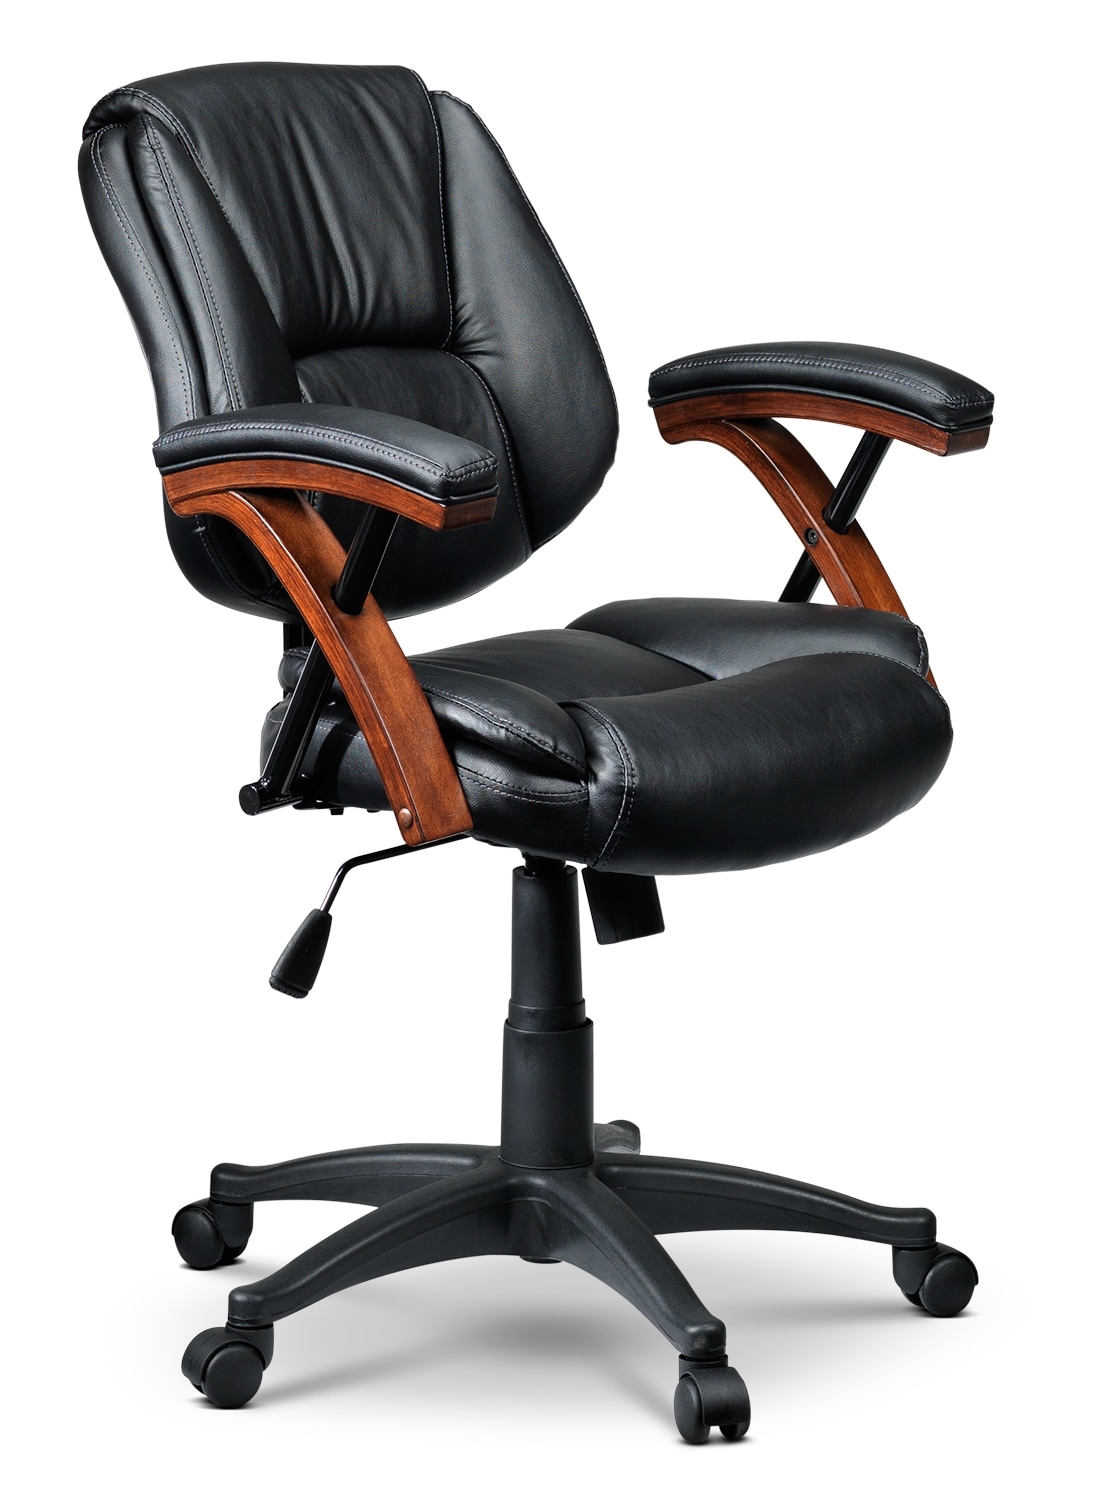 Home Office Furniture - Kilbourn Office Chair - Black